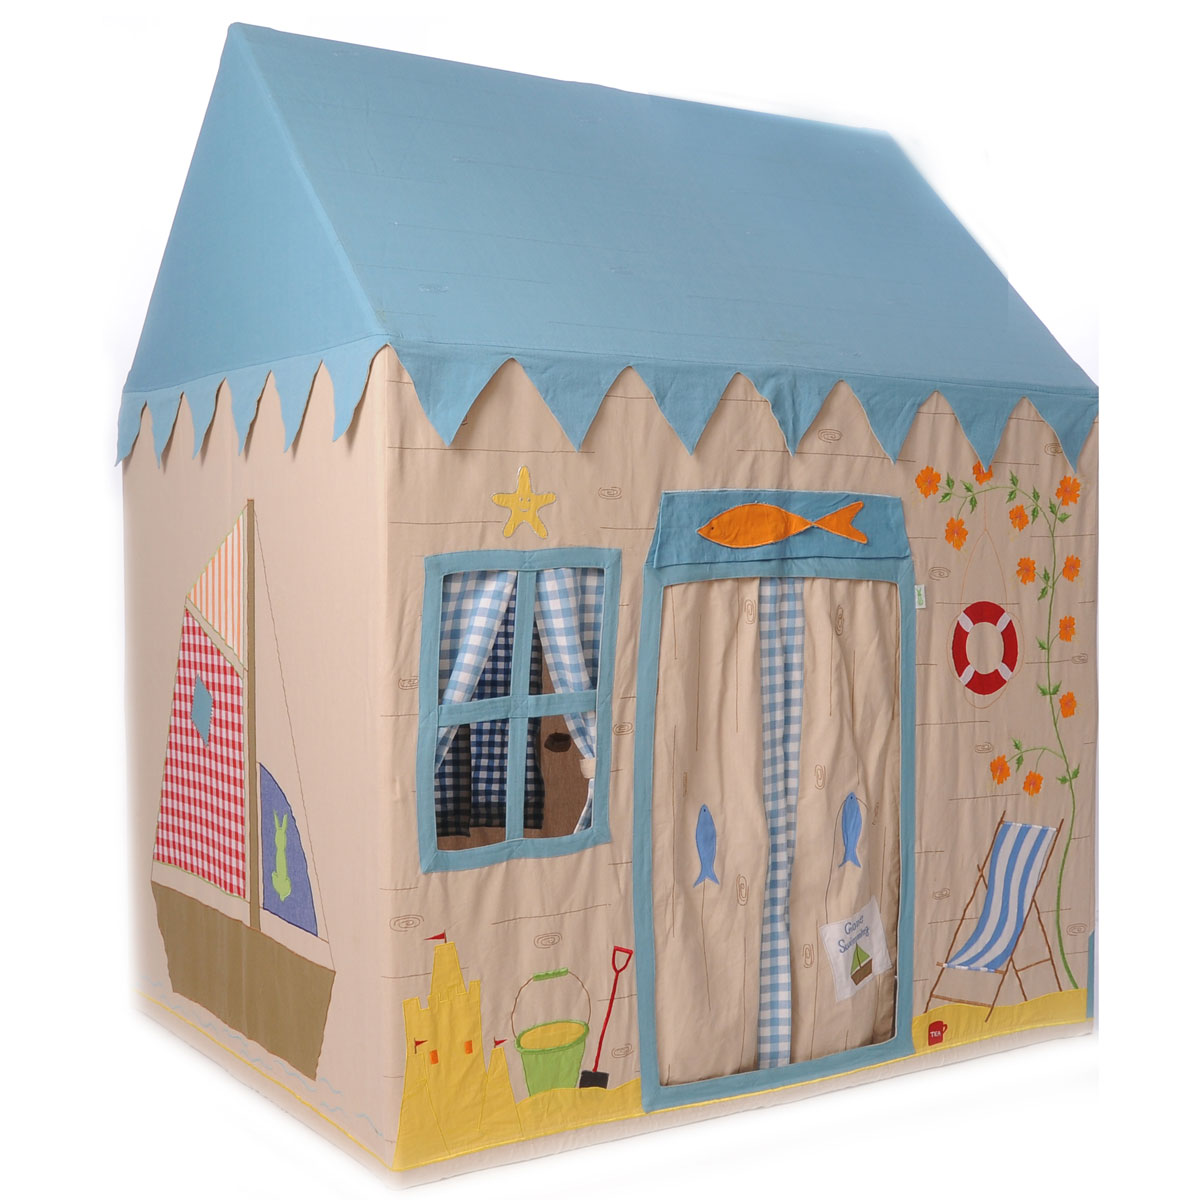 ... Beach House Play Tent Thumbnail 2 ...  sc 1 st  Sweet Retreat Kids & Beach House Play Tent